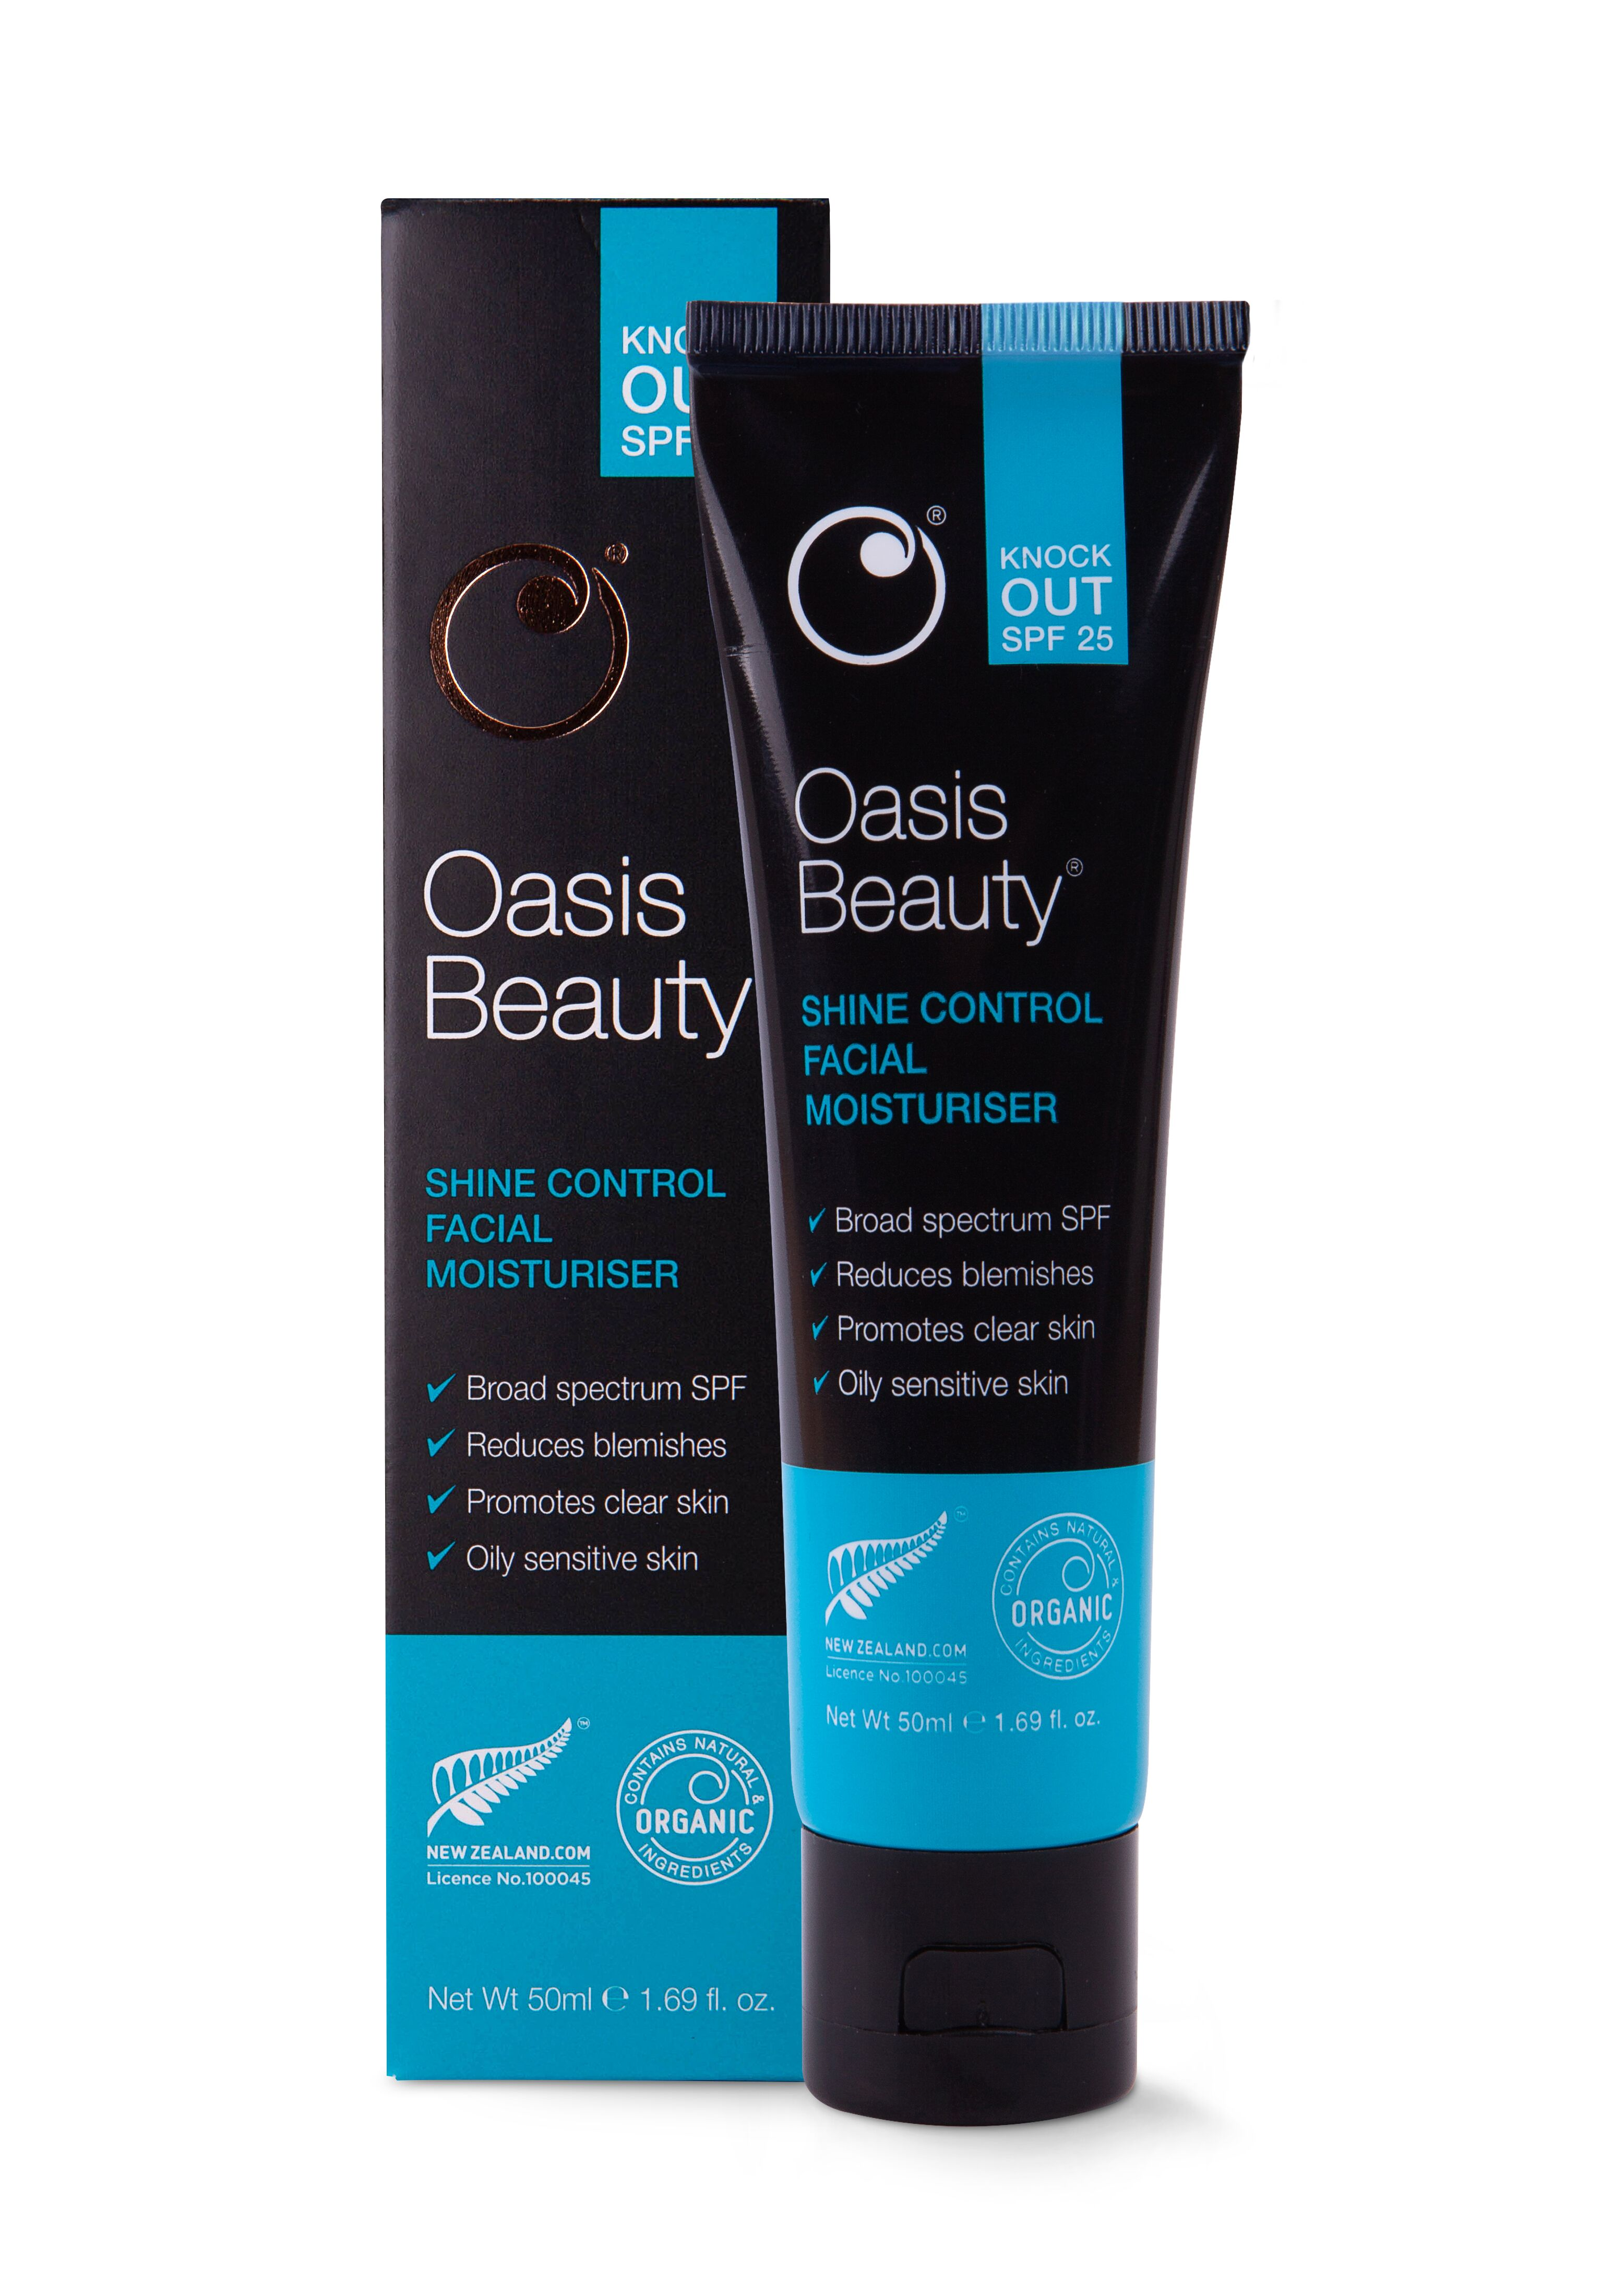 Oasis Beauty - 'Knock-Out' SPF25 Shine Control Facial Moisturiser